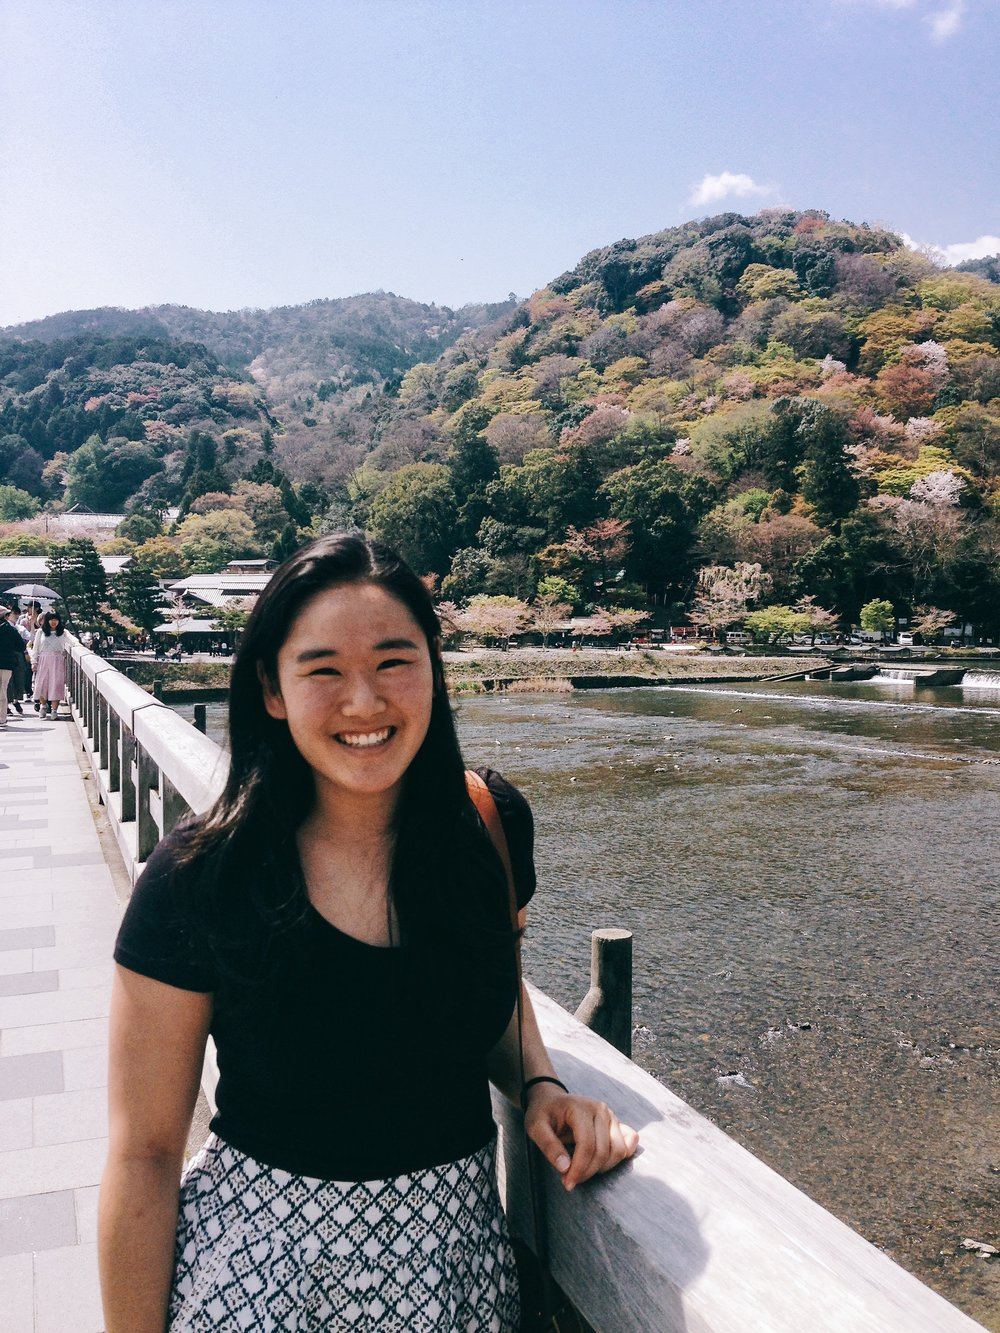 Rina Horii - Rina is recent graduate from Stanford University with a degree in Psychology. She hopes to continue learning about the mechanisms of the mind-body connection and is especially interested in mindset interventions to improve health and well-being